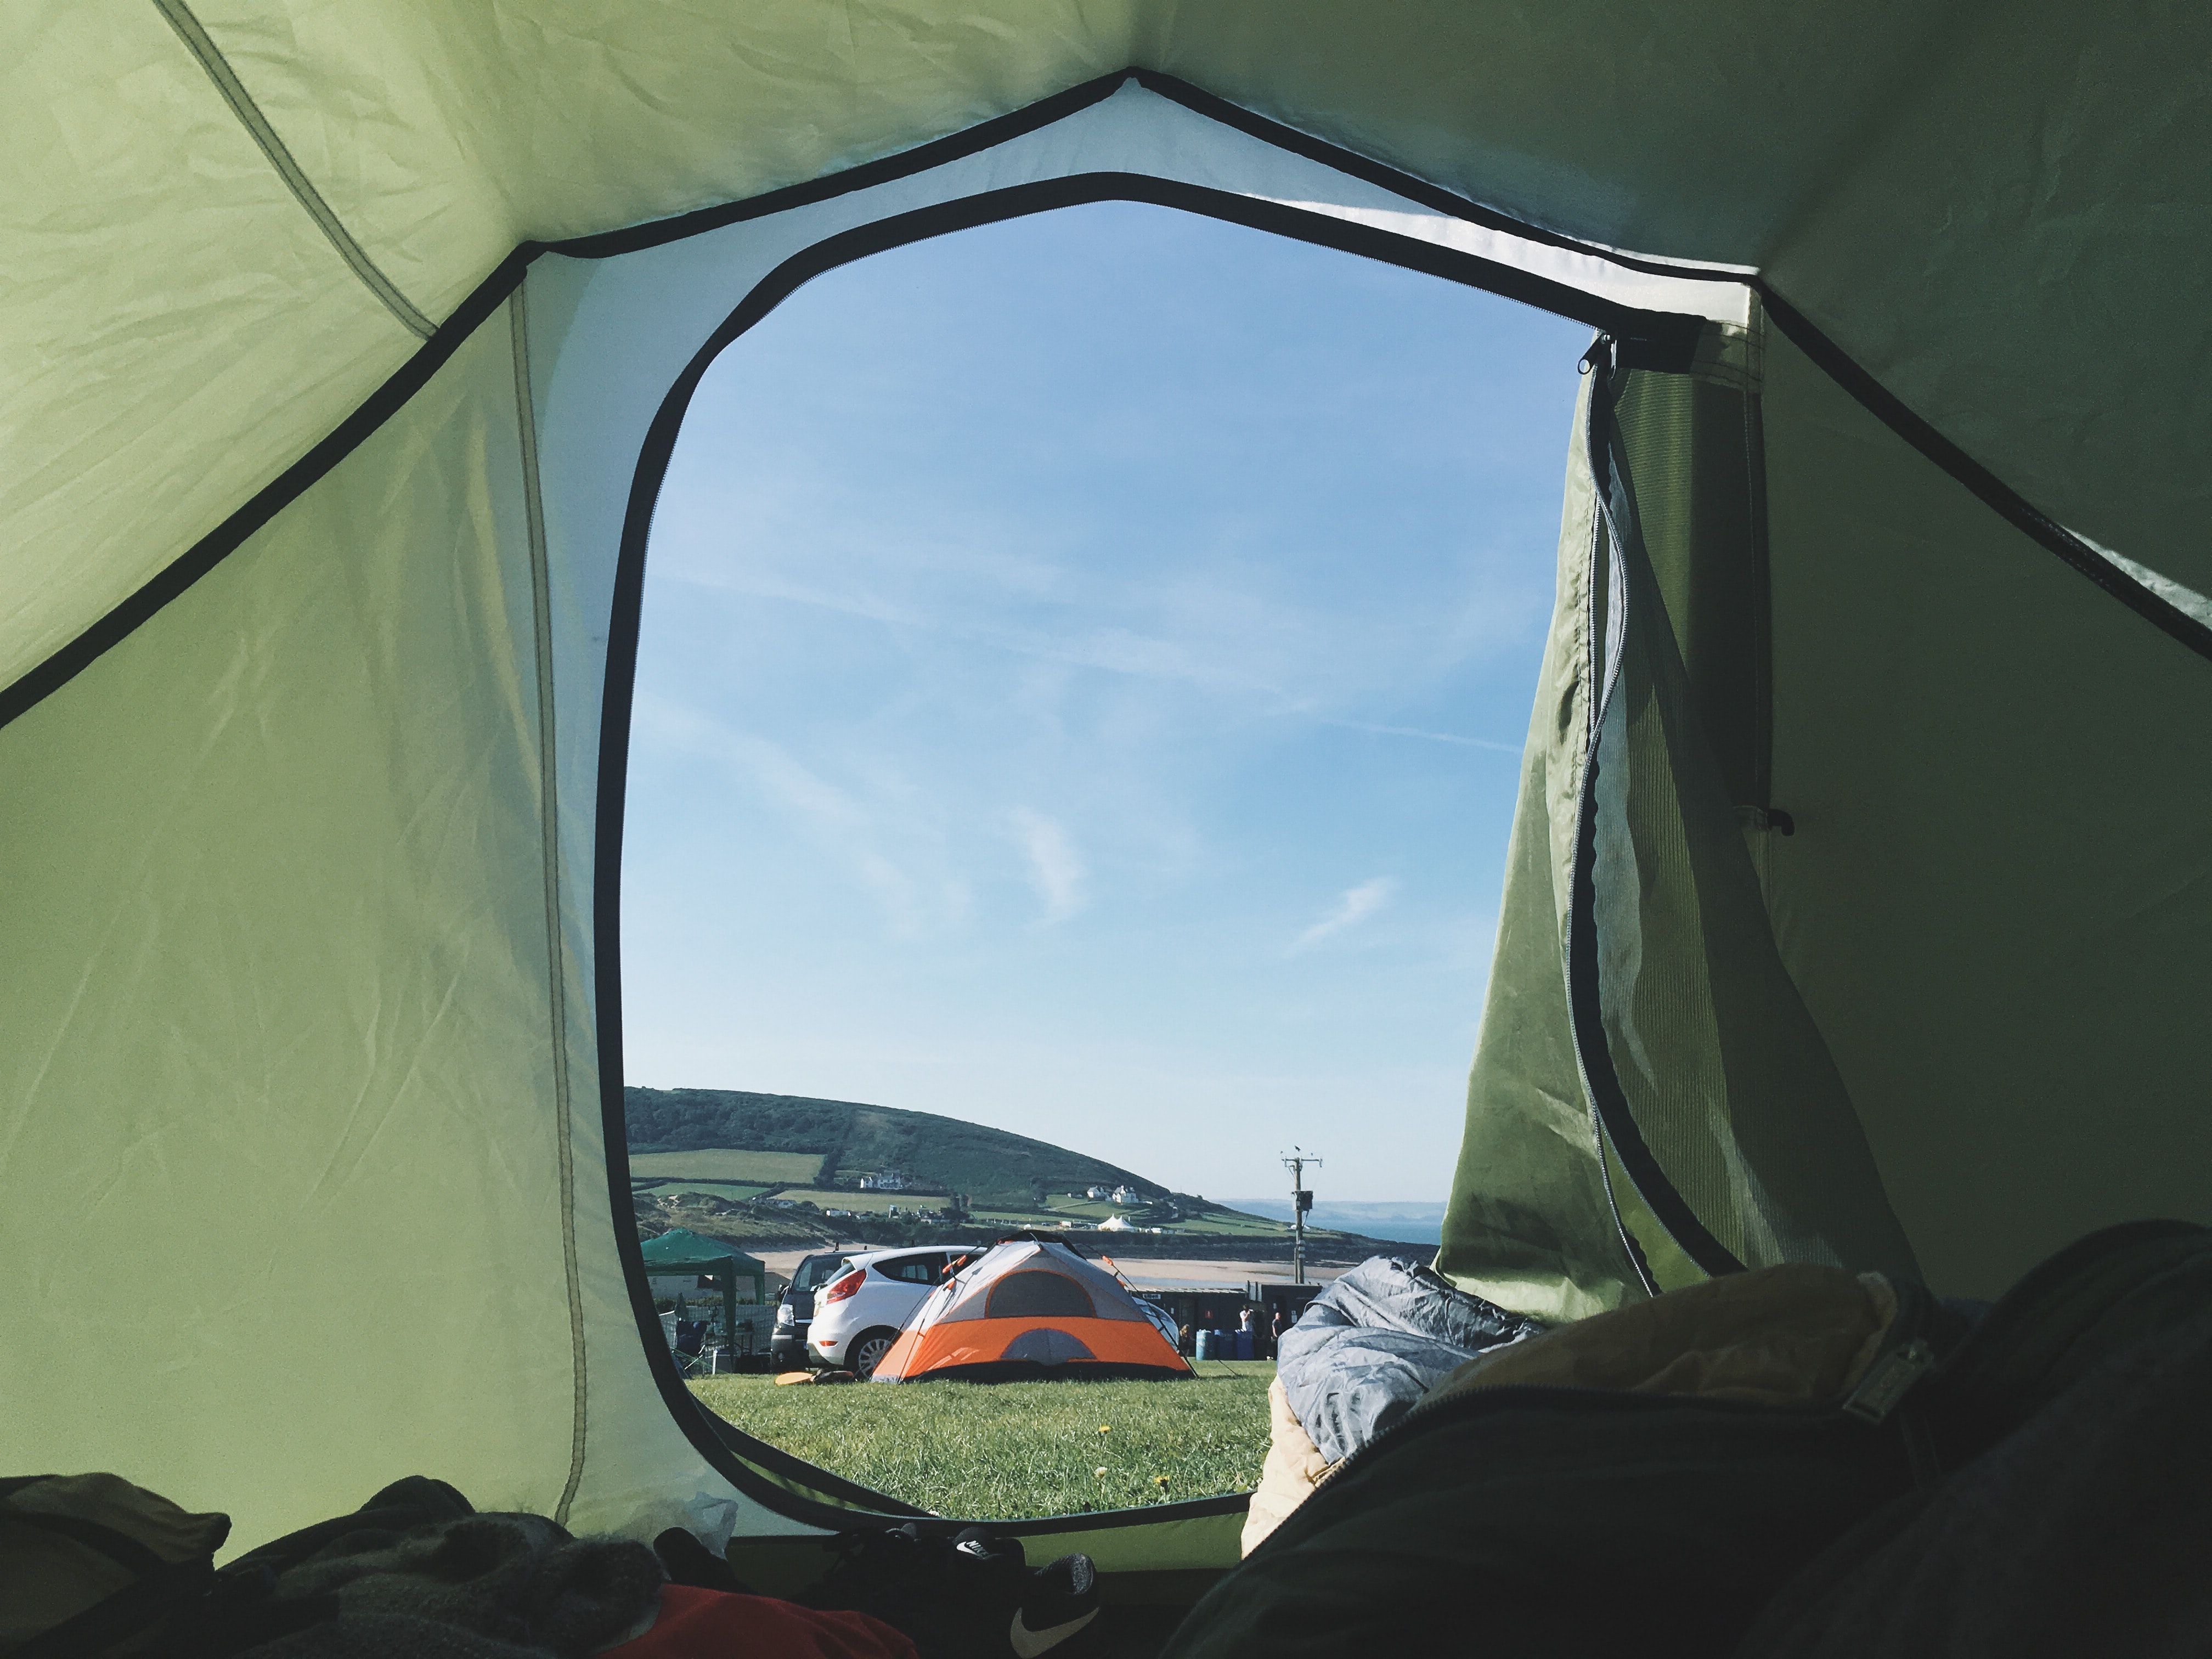 person inside tent with gray and orange tent background outside